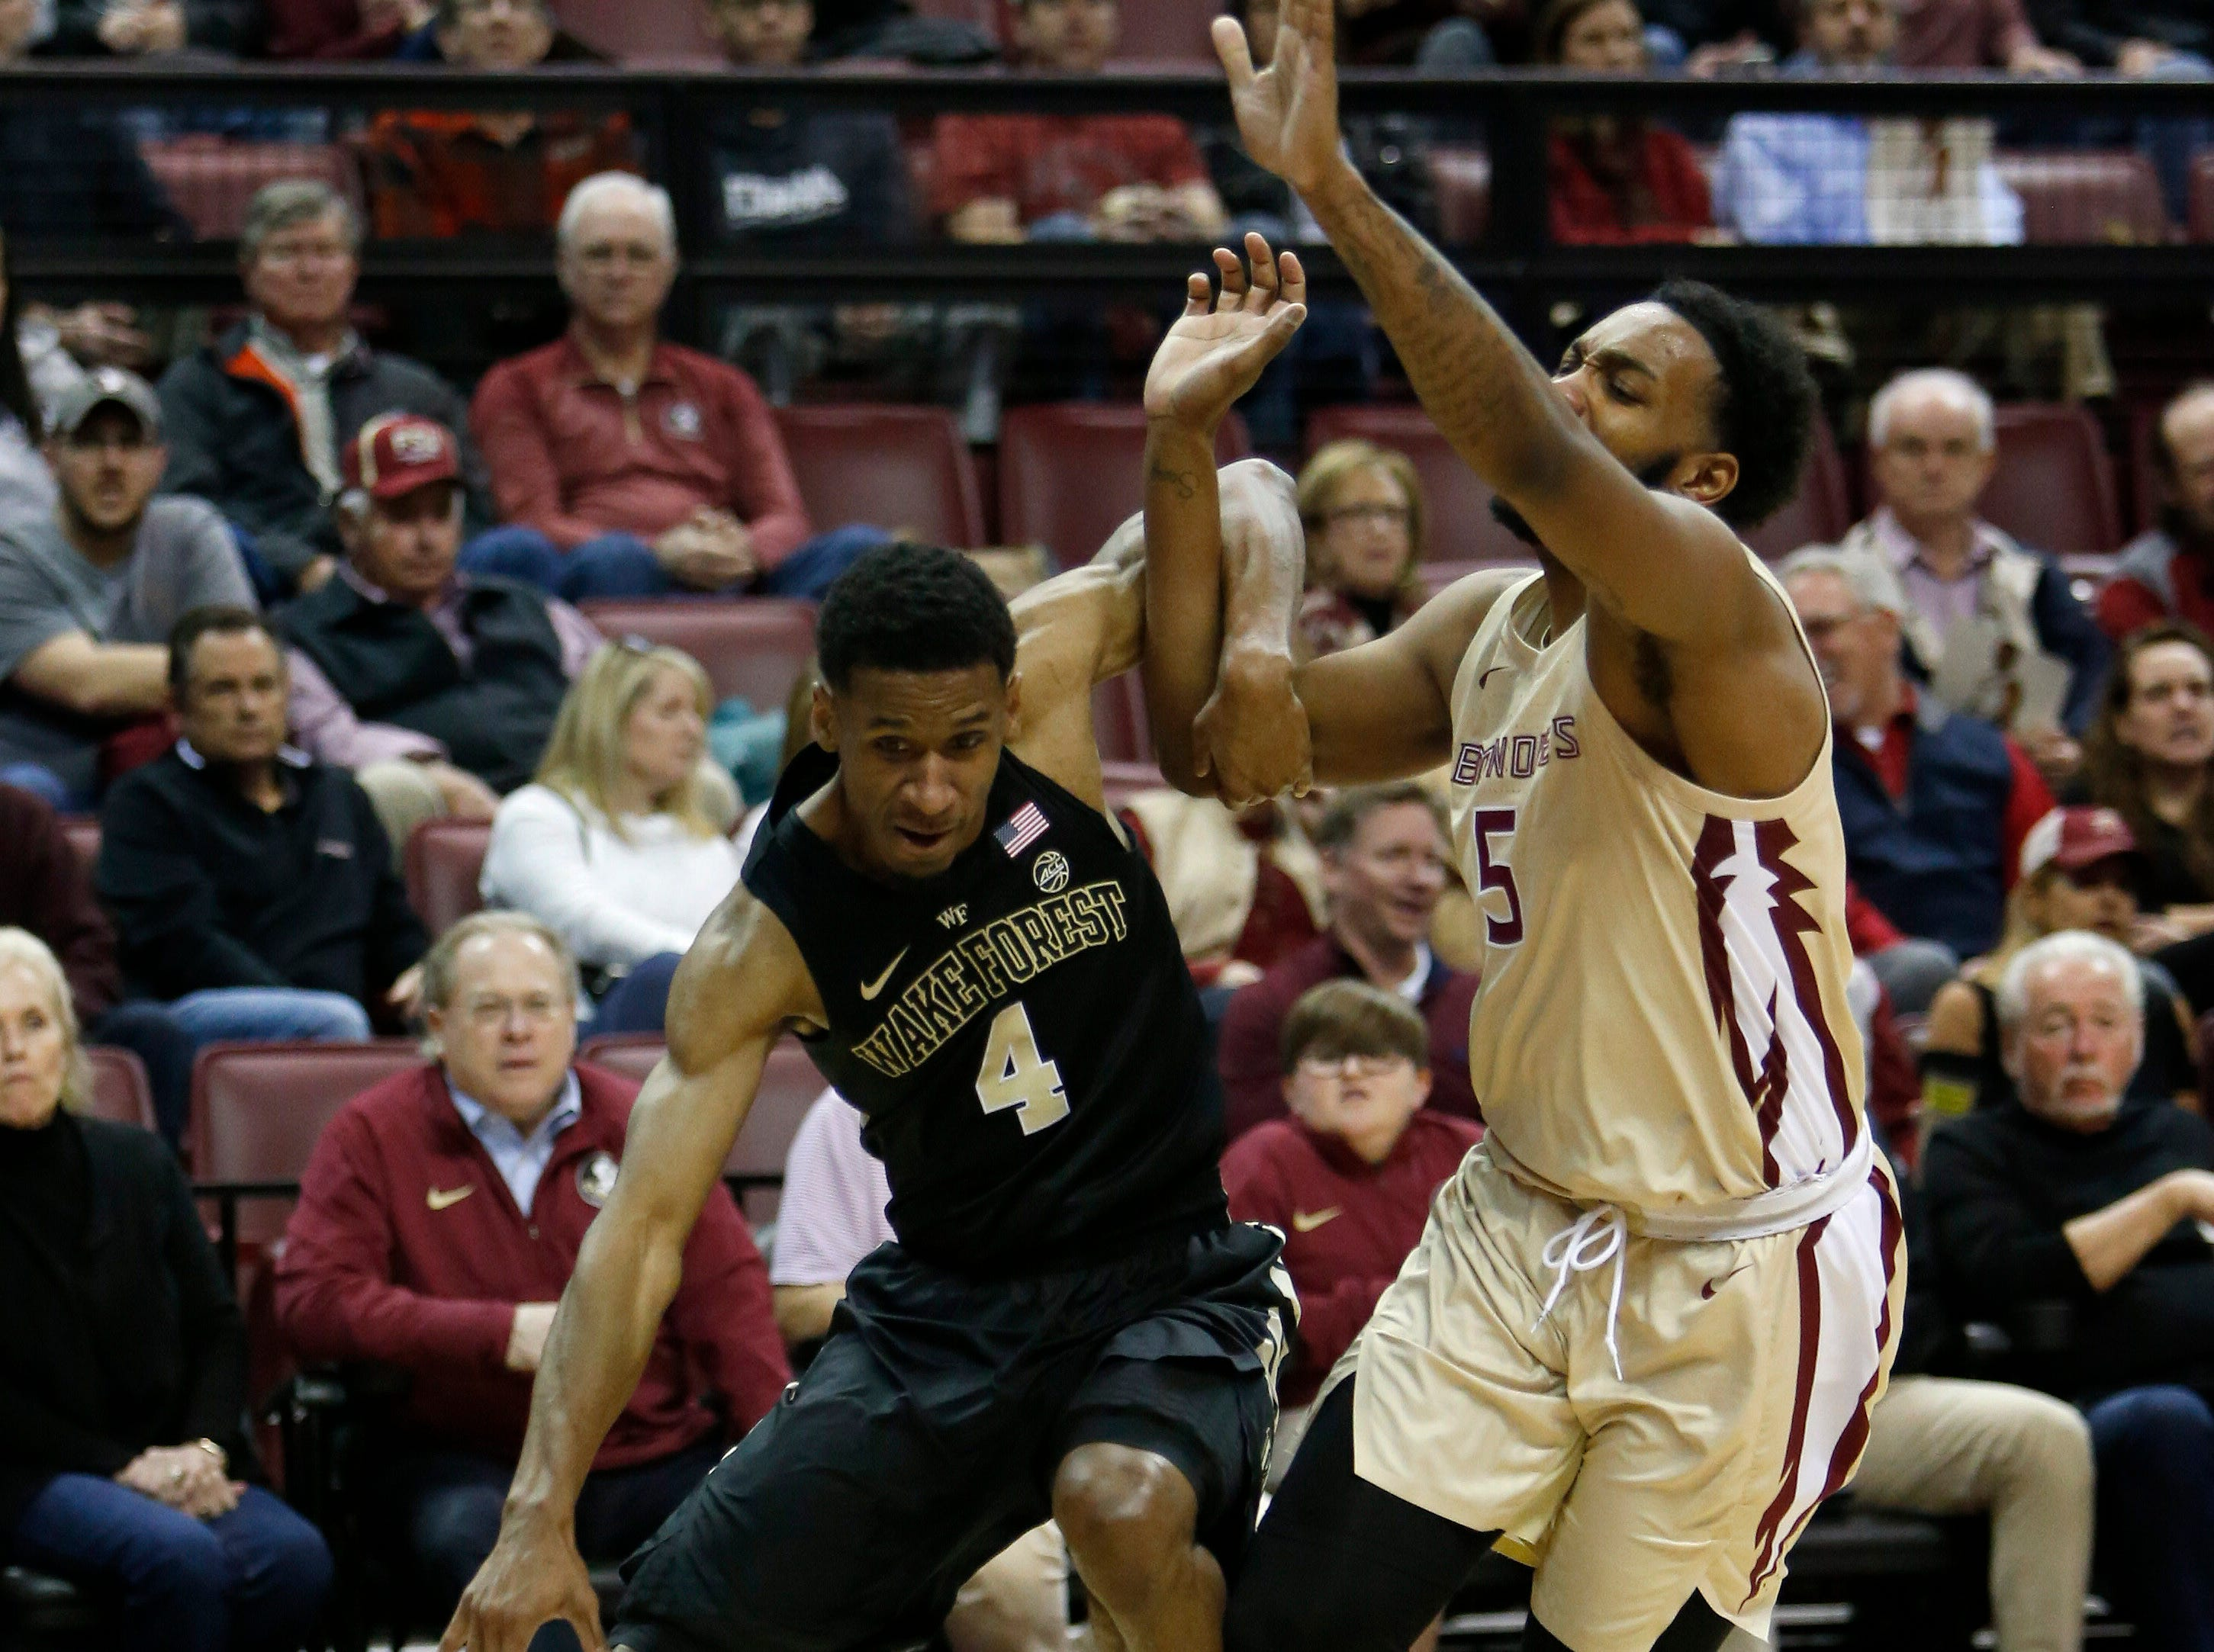 Feb 13, 2019; Tallahassee, FL, USA; Wake Forest Demon Deacons guard Torry Johnson (4) dribbles the ball around Florida State Seminoles guard PJ Savoy (5) during the first half of action at Donald L. Tucker Center. Mandatory Credit: Glenn Beil-USA TODAY Sports